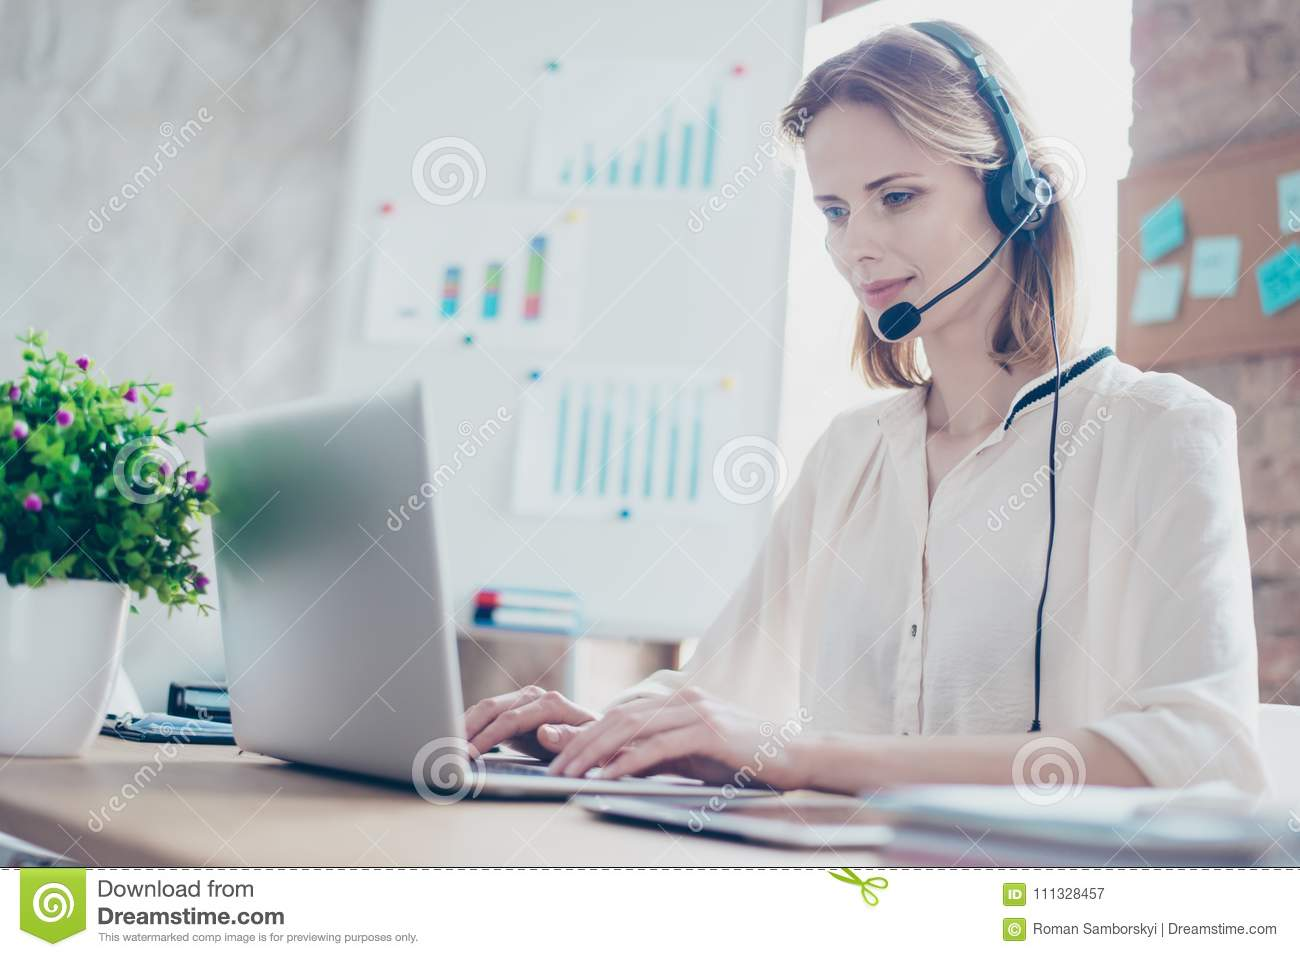 Close up portrait of happy smiling confident experienced qualified young professional operator of call center, she is sitting